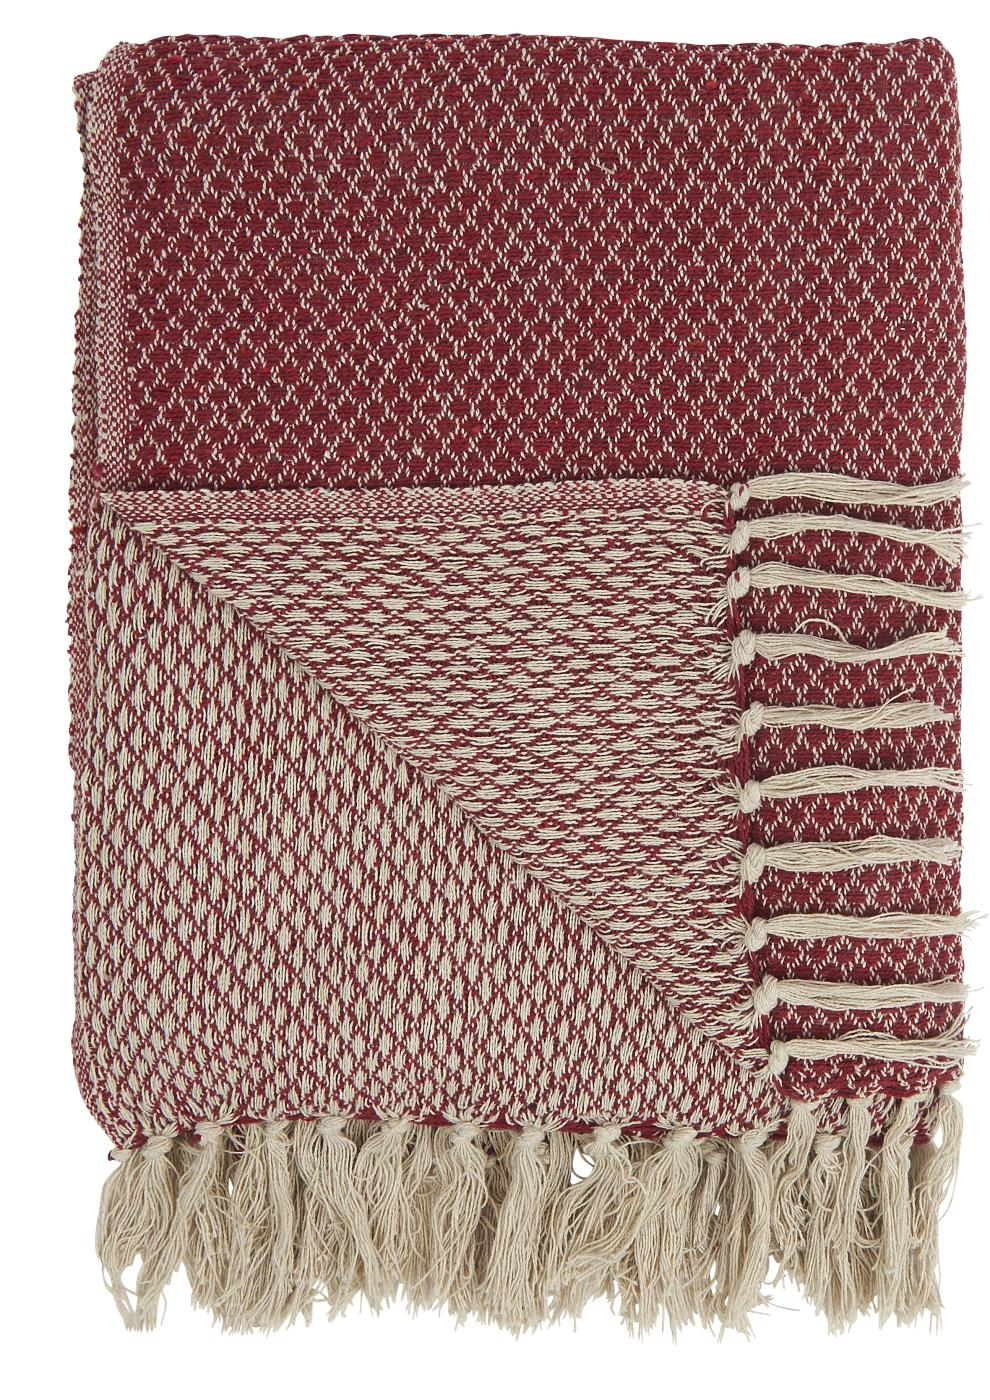 Red Woven Design Blanket